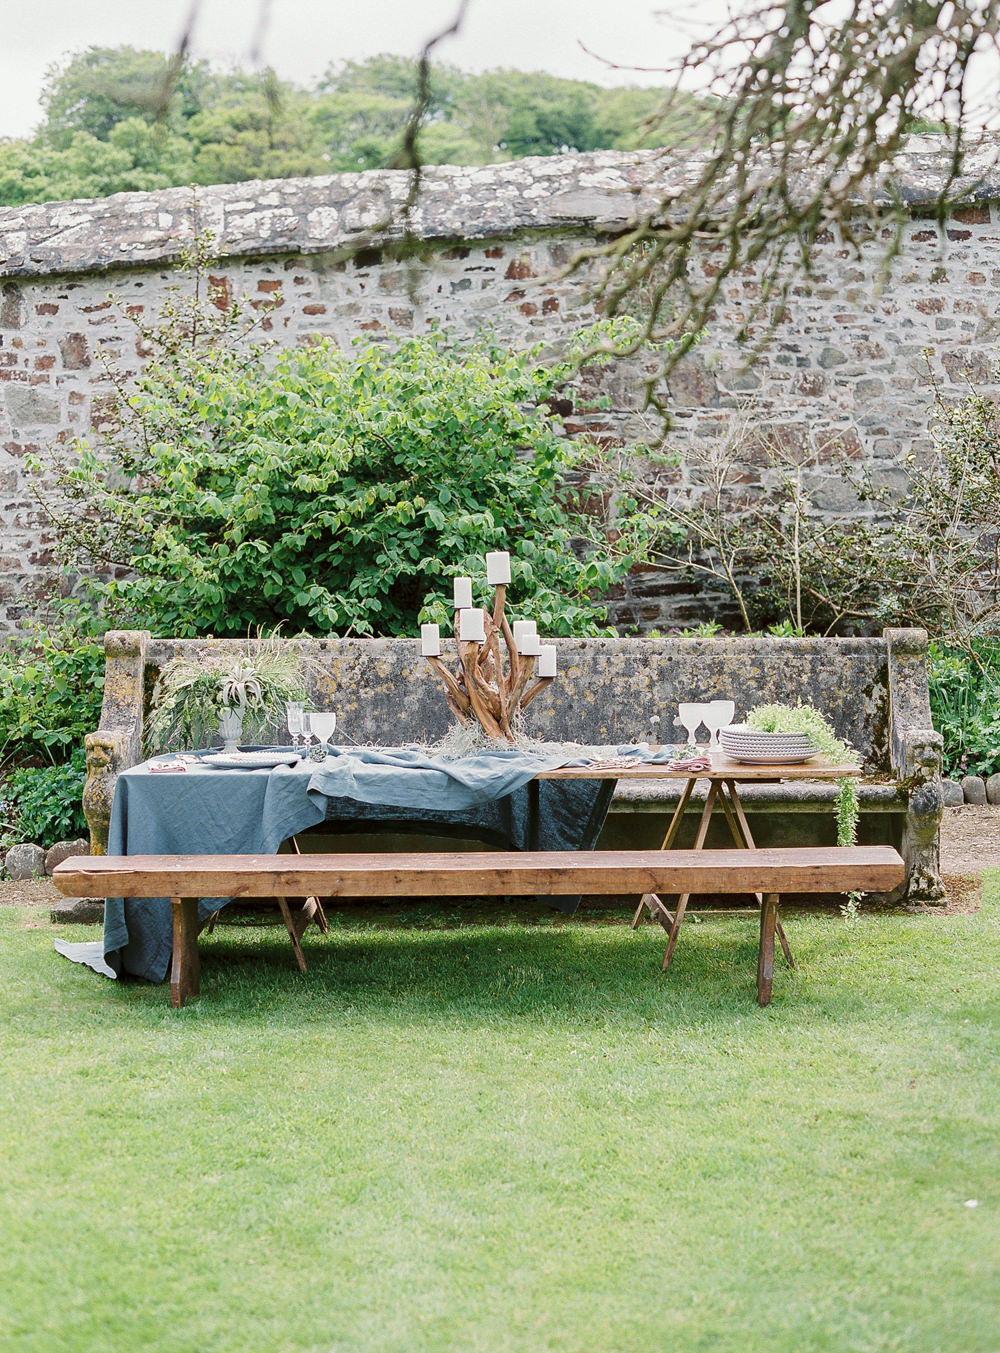 Outdoor tablescape for intimate meal